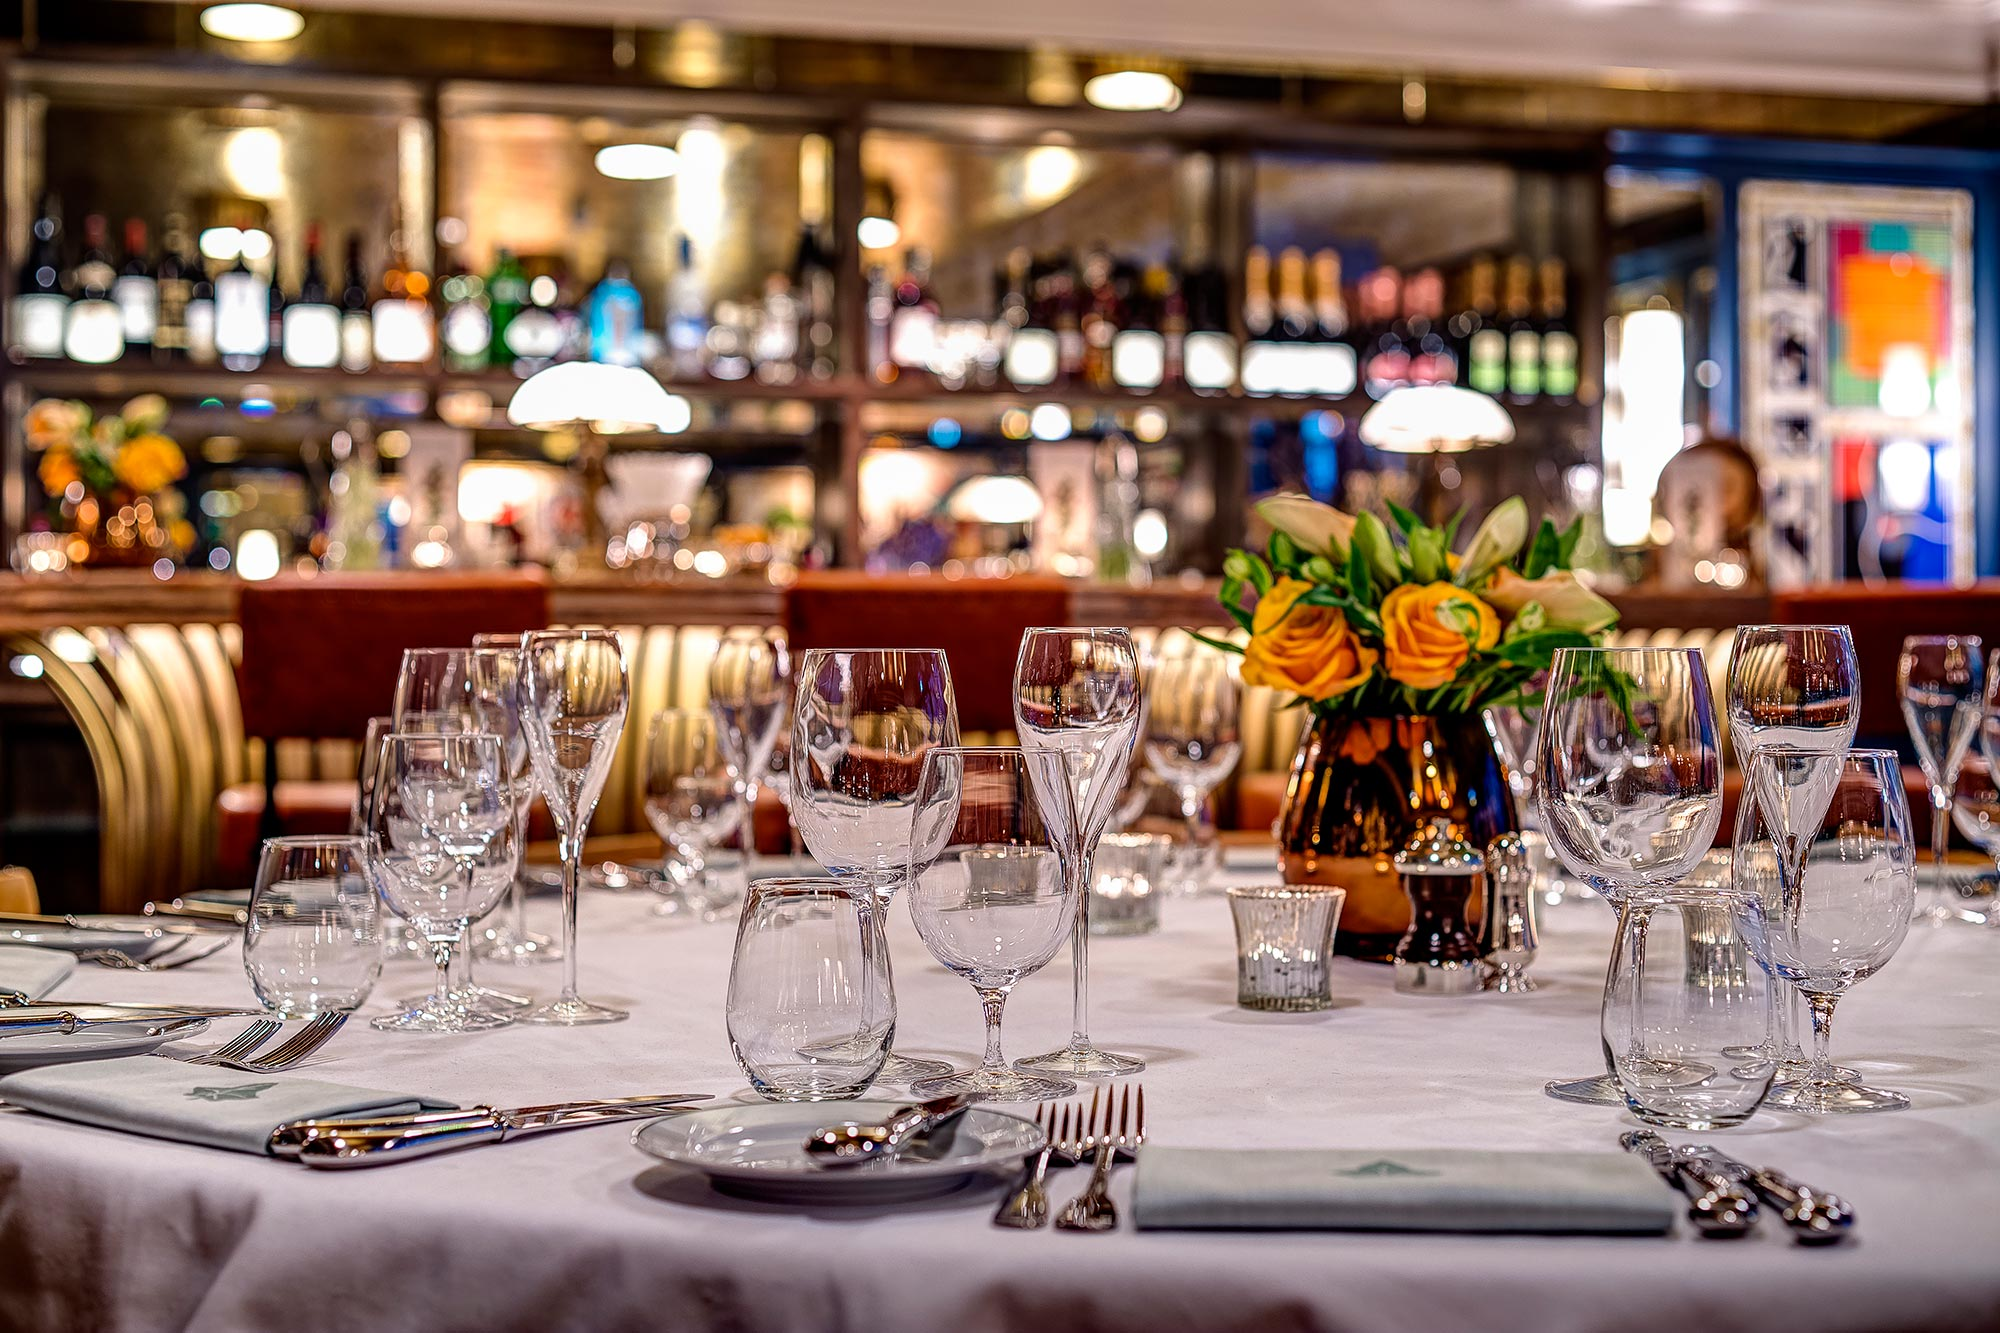 The Private Dining Room at The Ivy Soho Brasserie - The Ivy Soho Brasserie